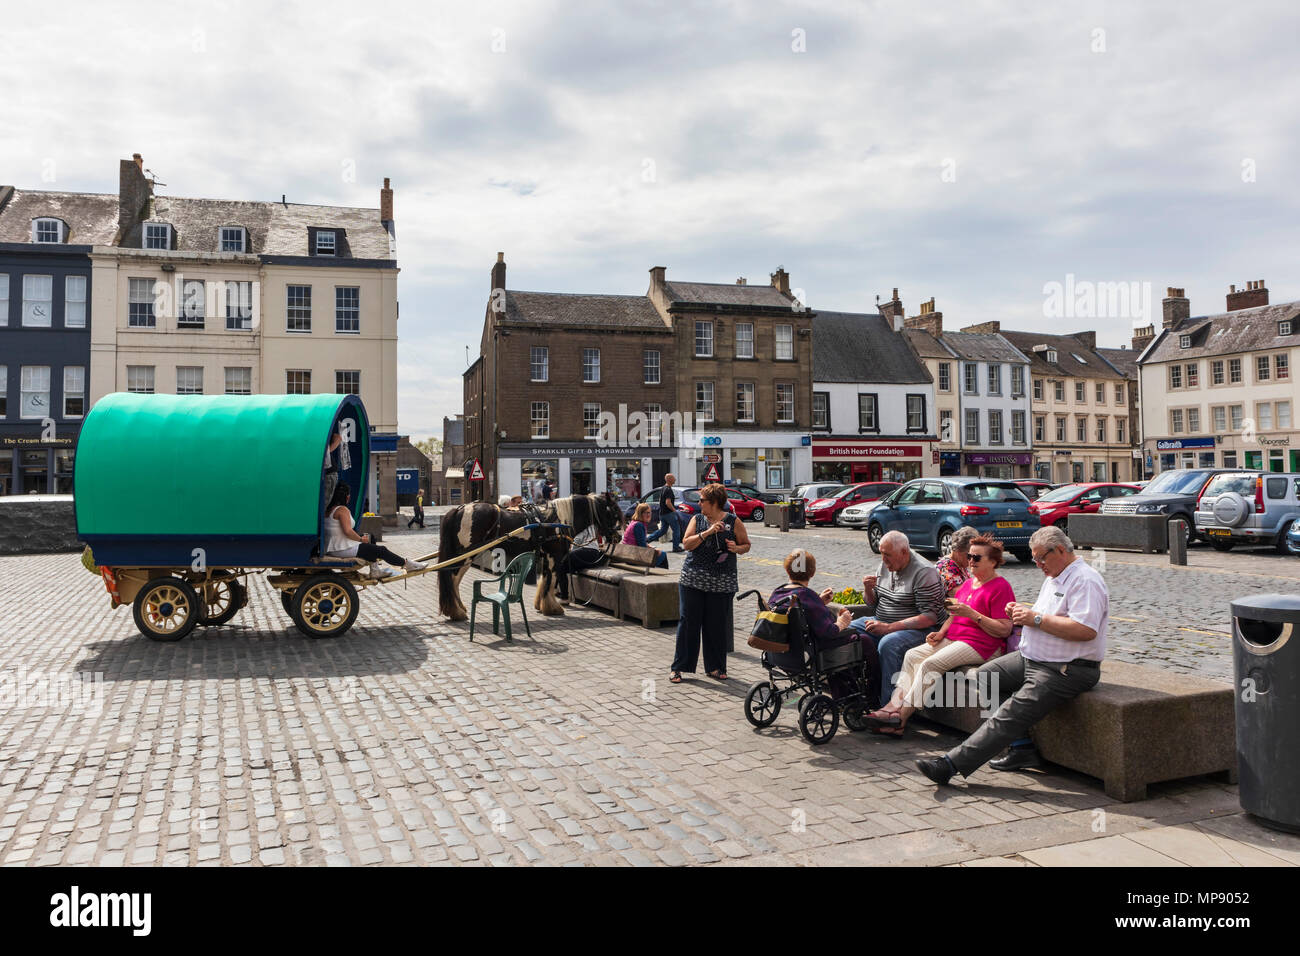 A travelling gypsy horse-drawn caravan parked in the market of Kelso, Scotland, with historic permission for genuine gypsy visitors to do this. - Stock Image